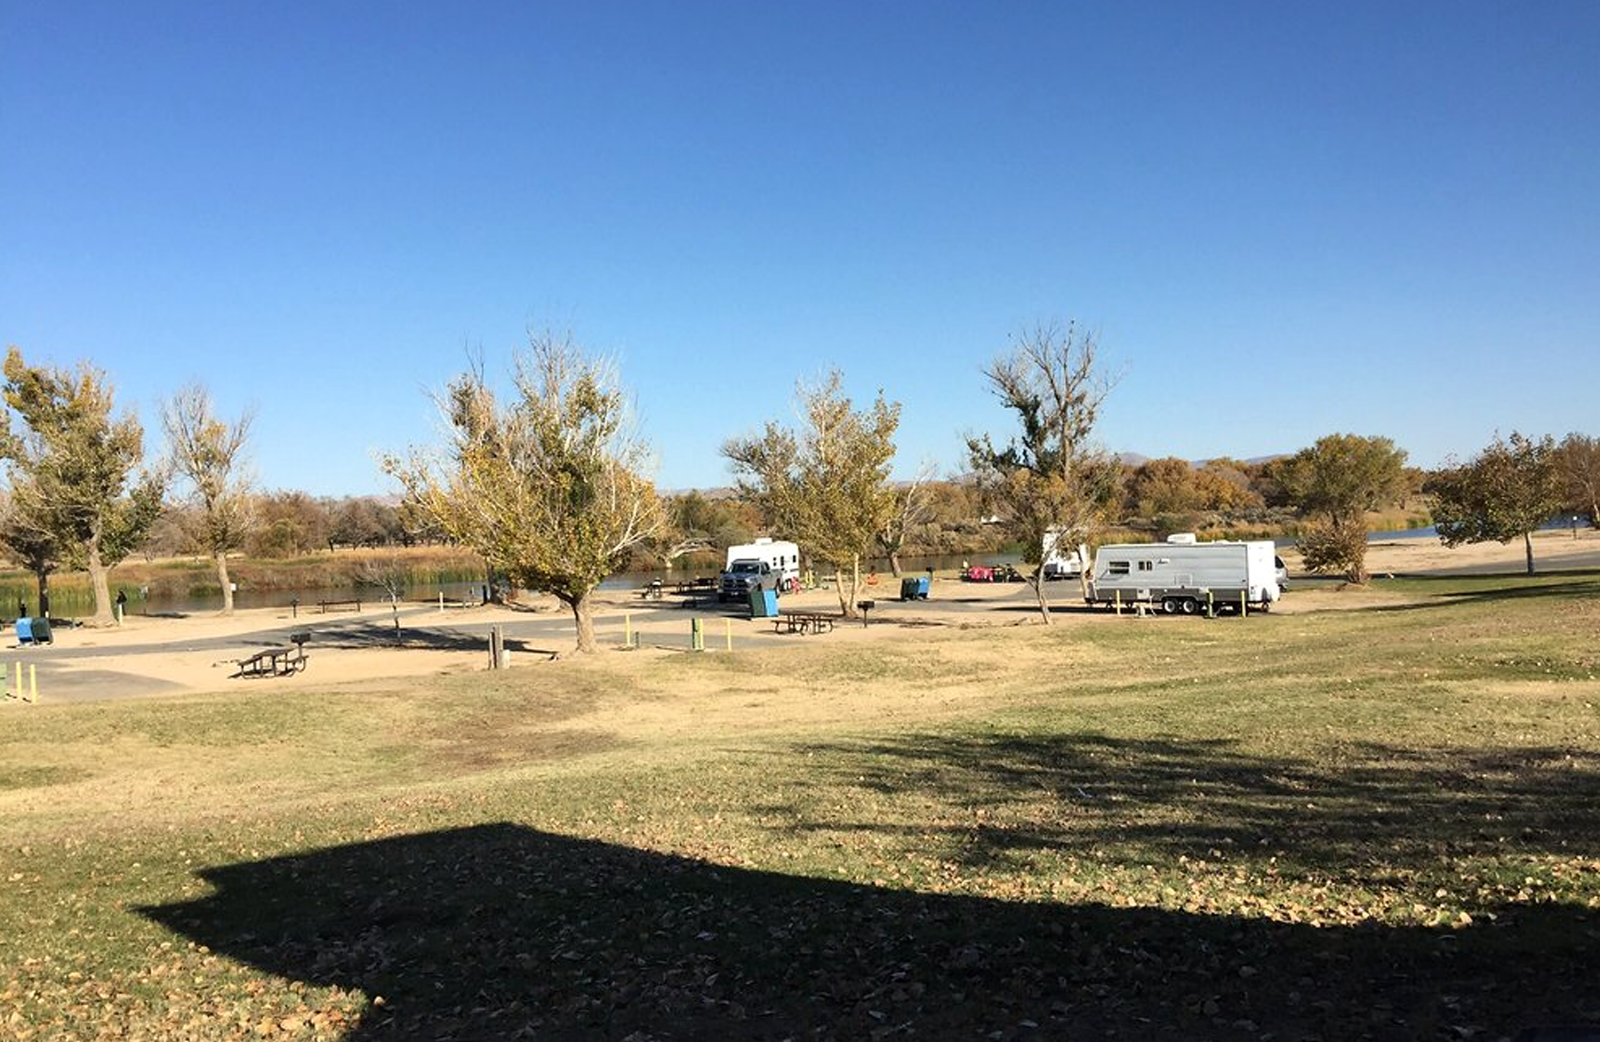 A large grass area with RVs parked.